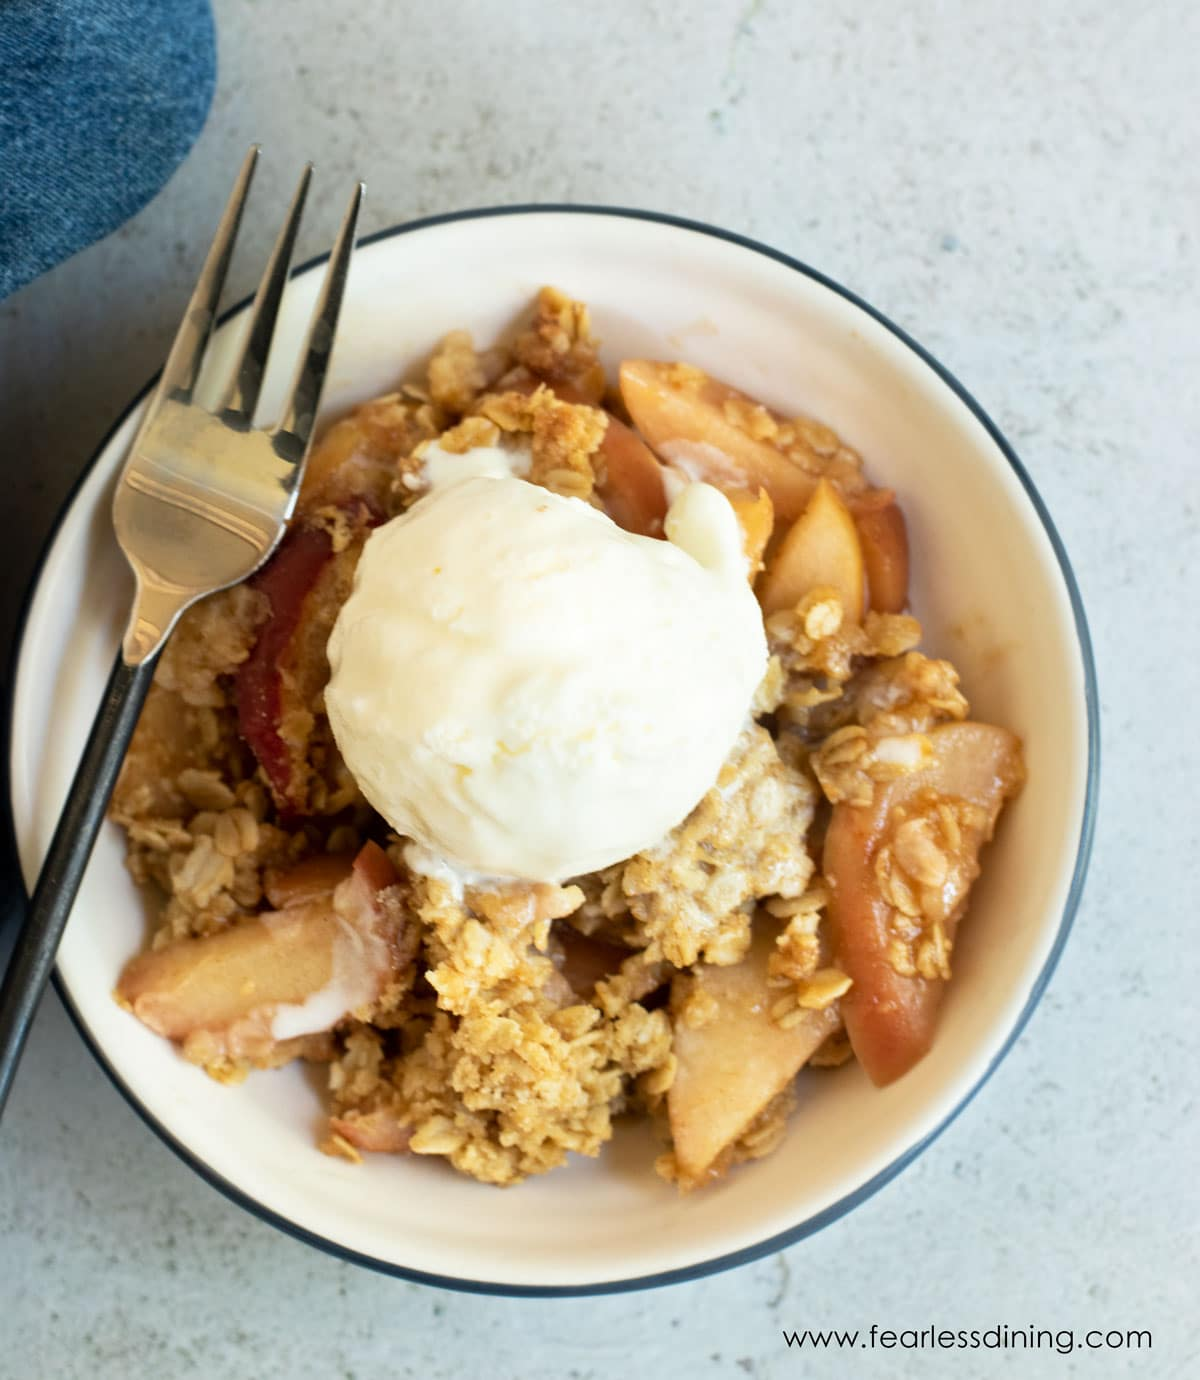 the top view of a bowl of gluten free apple crisp with ice cream